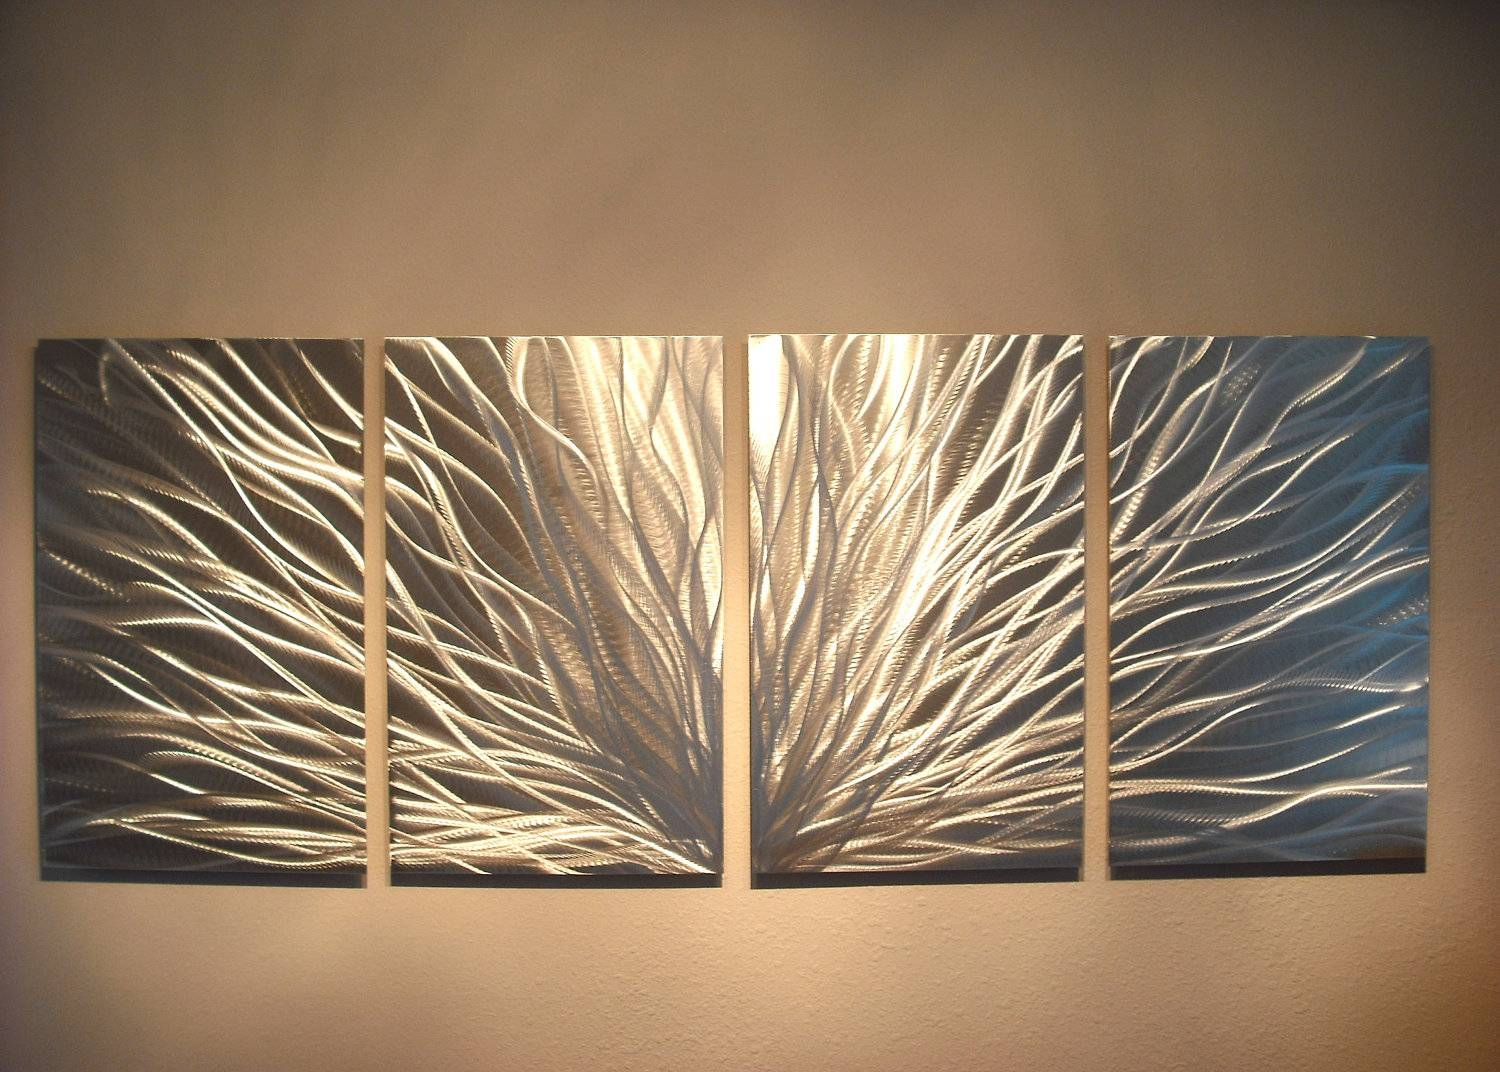 Radiance – Abstract Metal Wall Art Contemporary Modern Decor Within 2017 Modern Abstract Metal Wall Art (View 16 of 20)